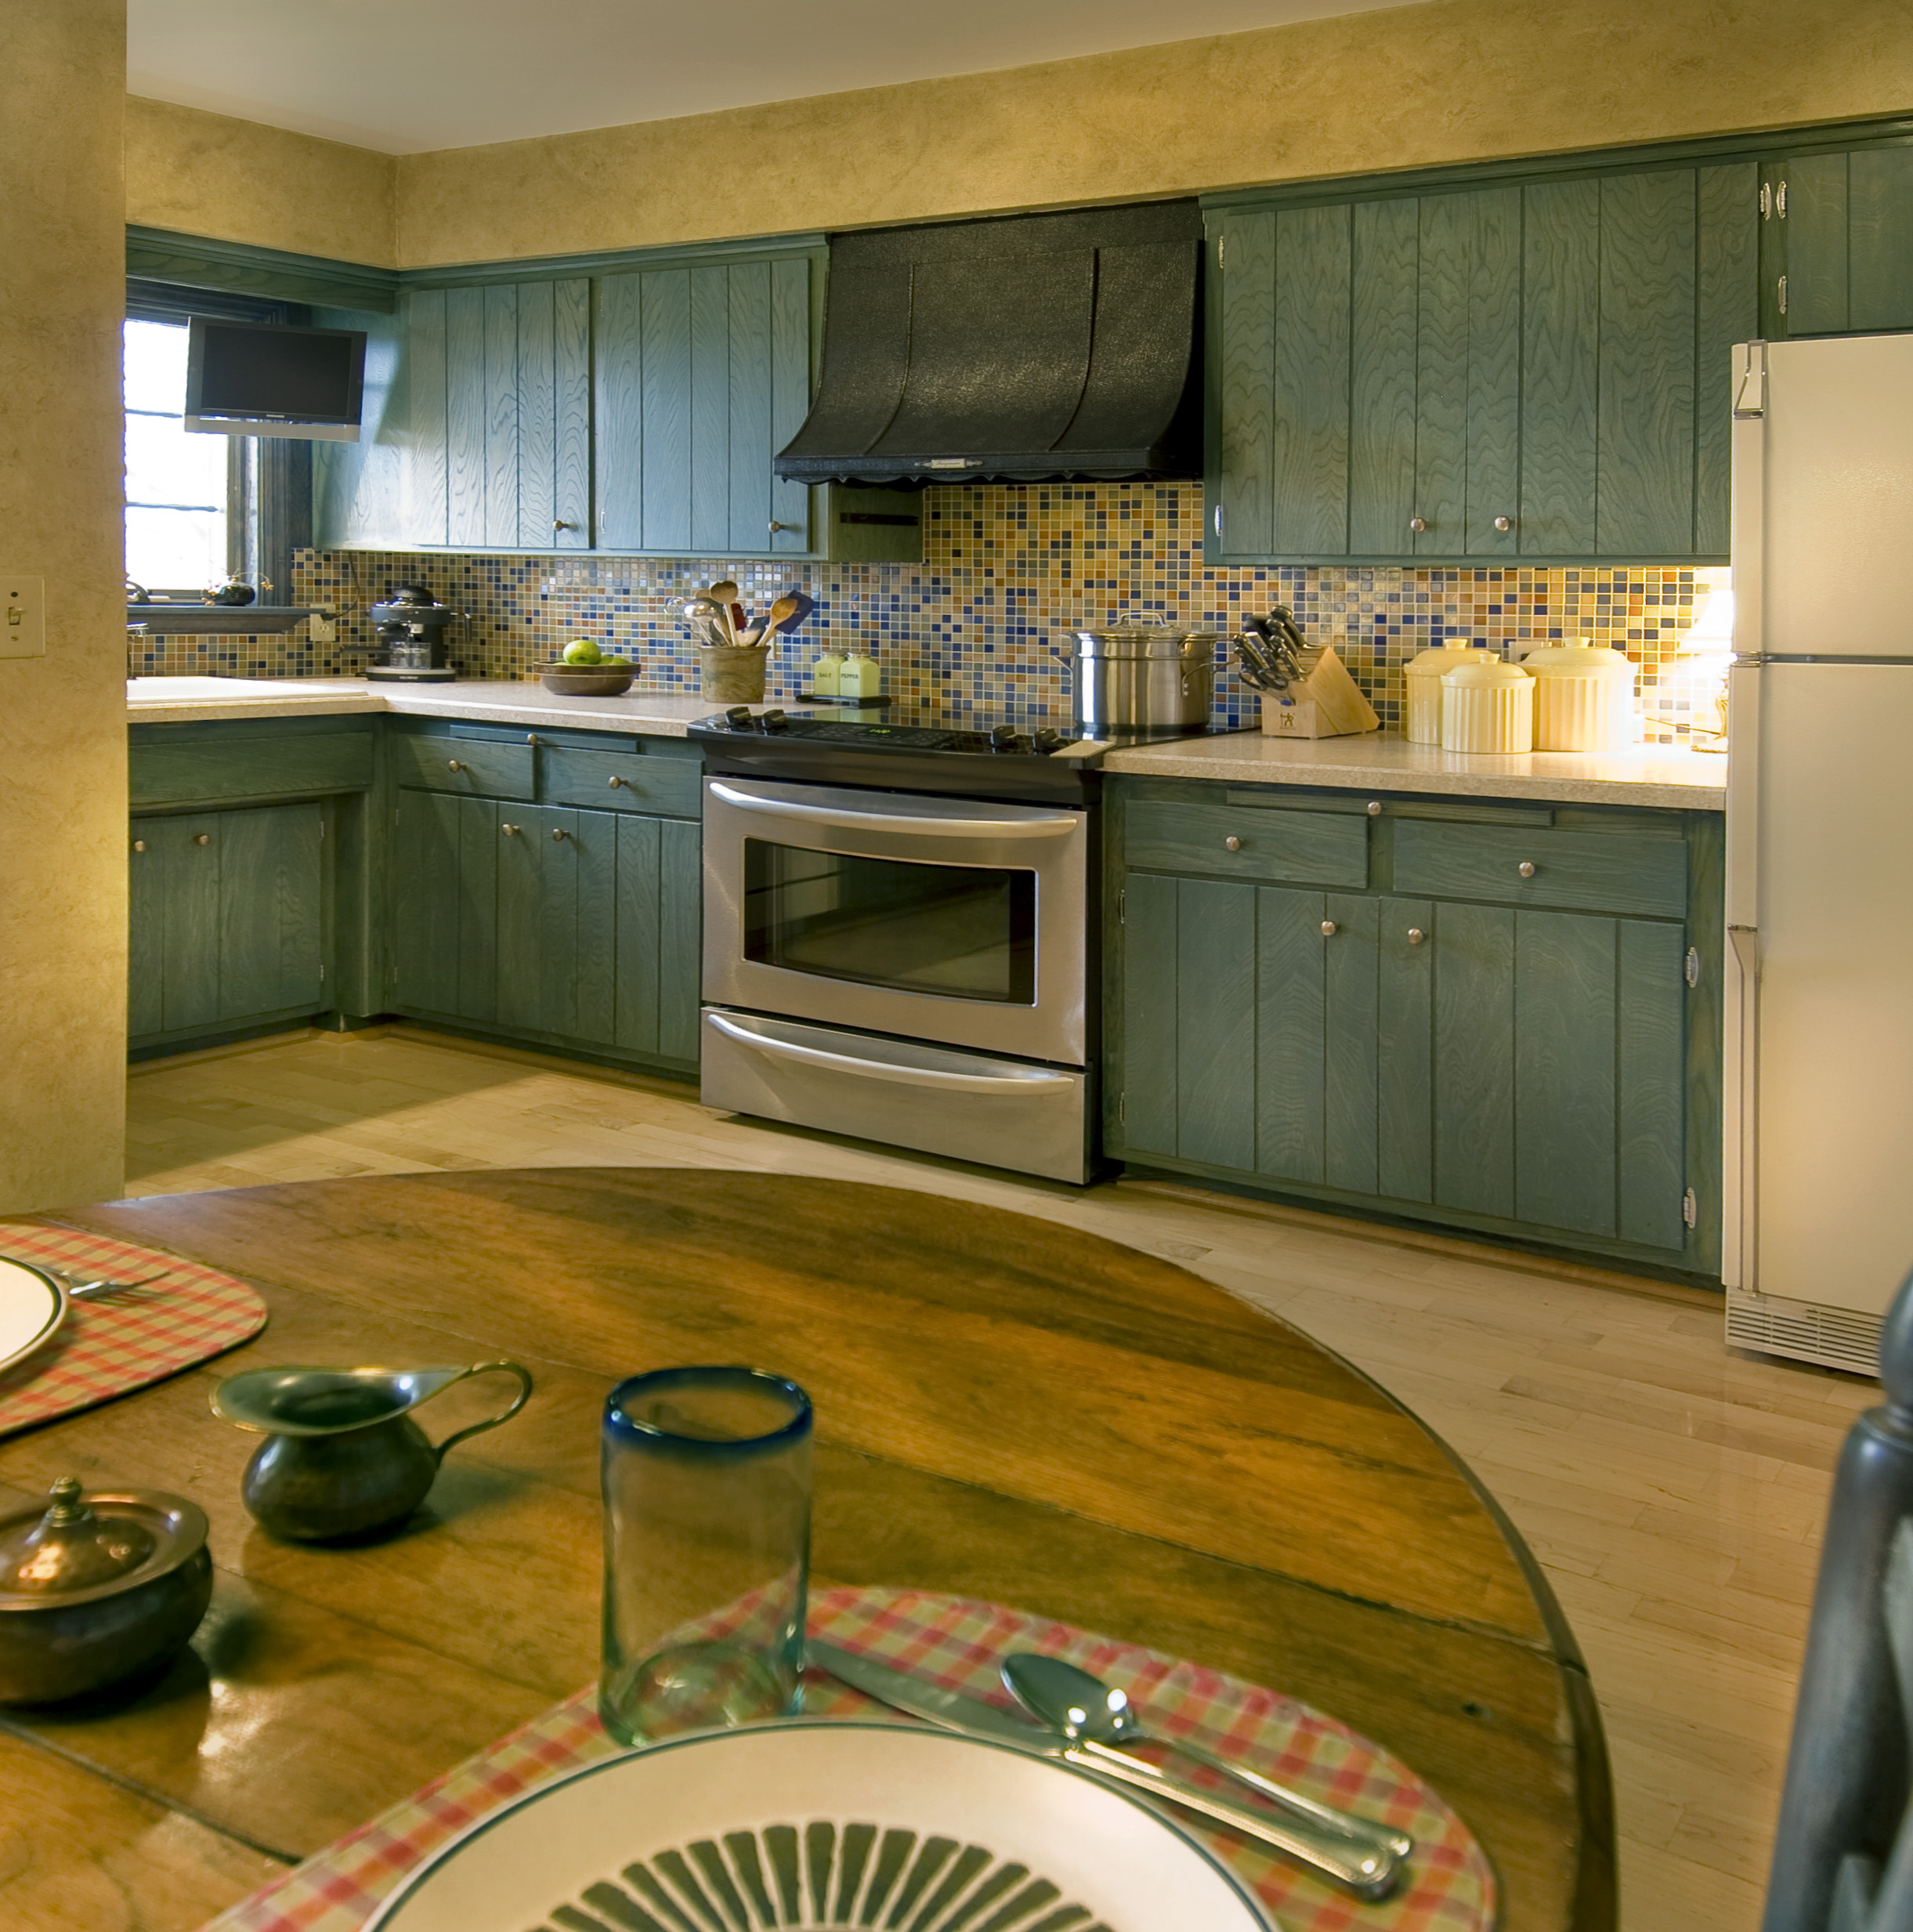 Reviving a 1970s kitchen - S kitchens ...